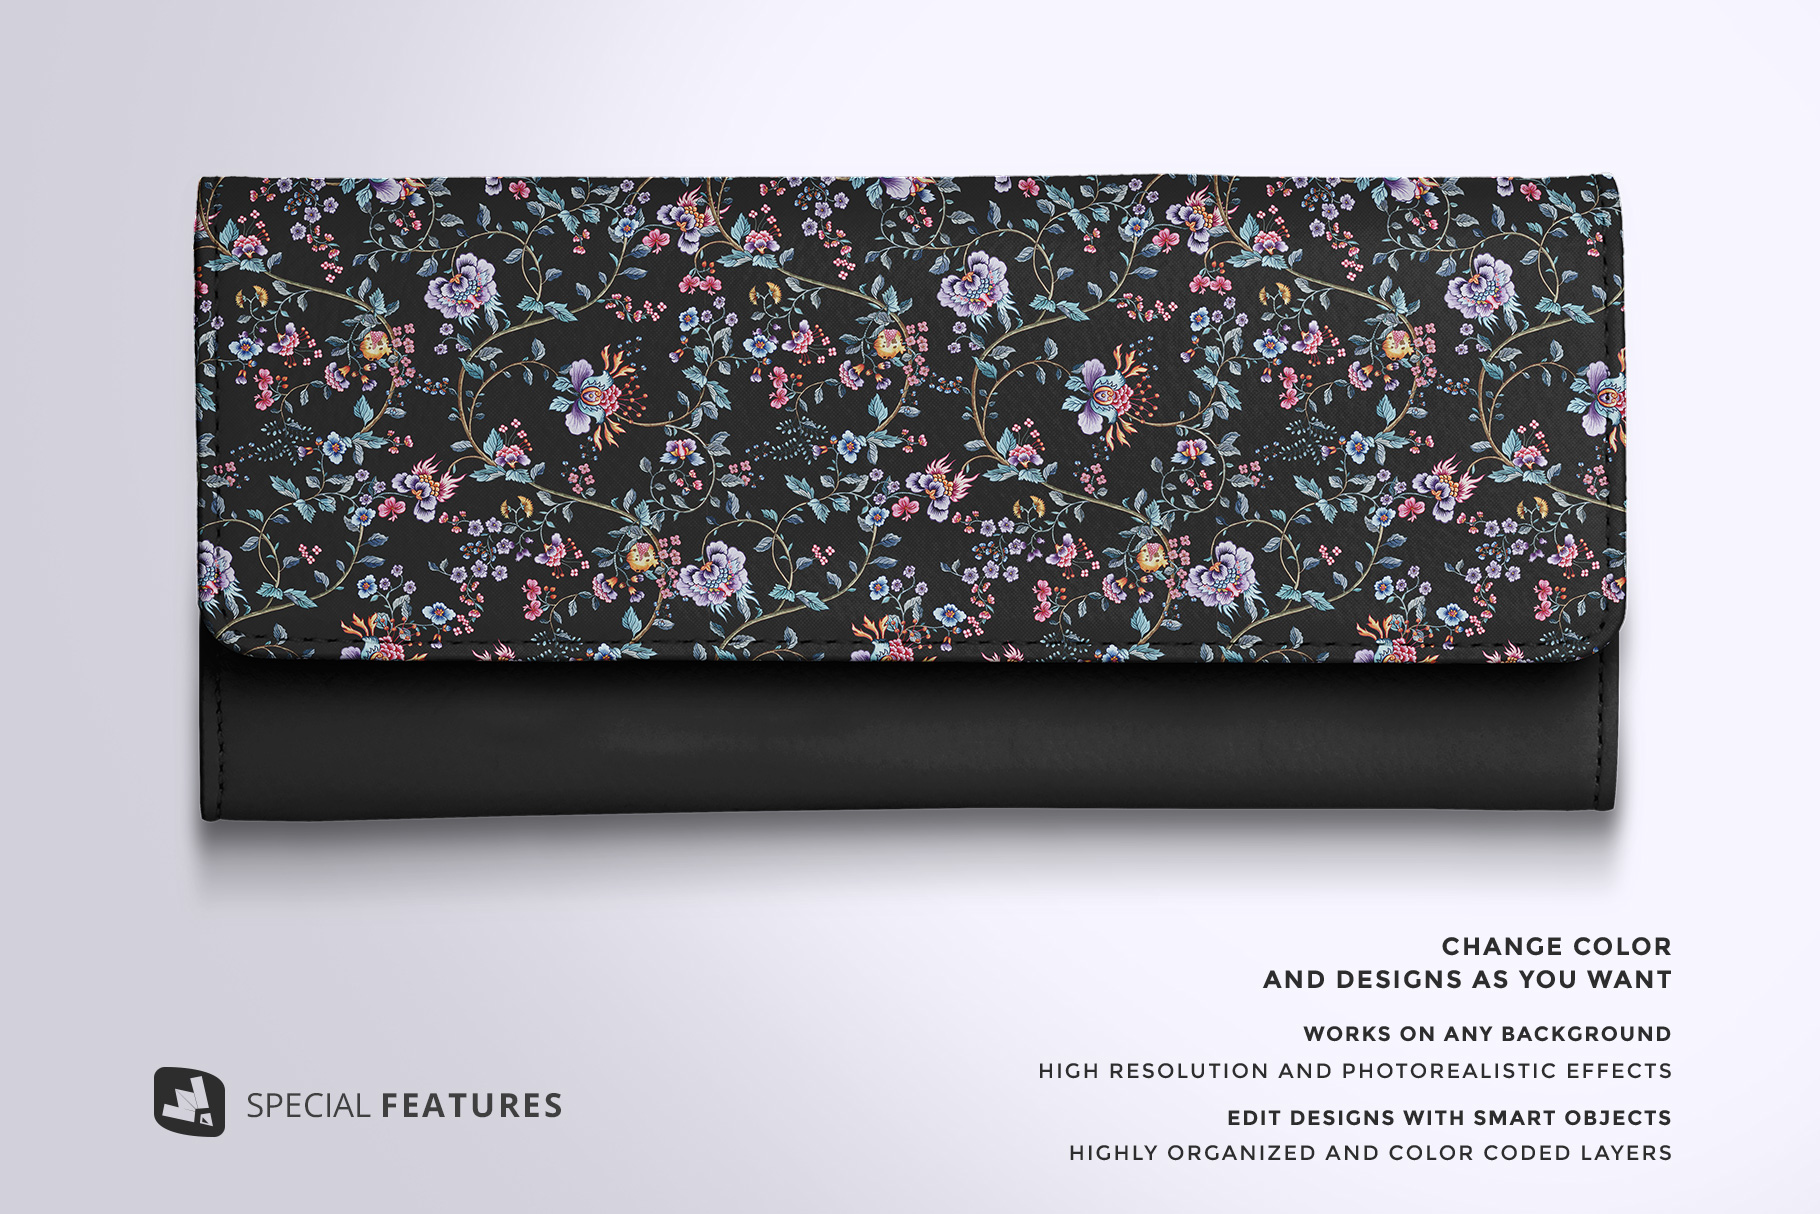 special features of the top view women's purse mockup